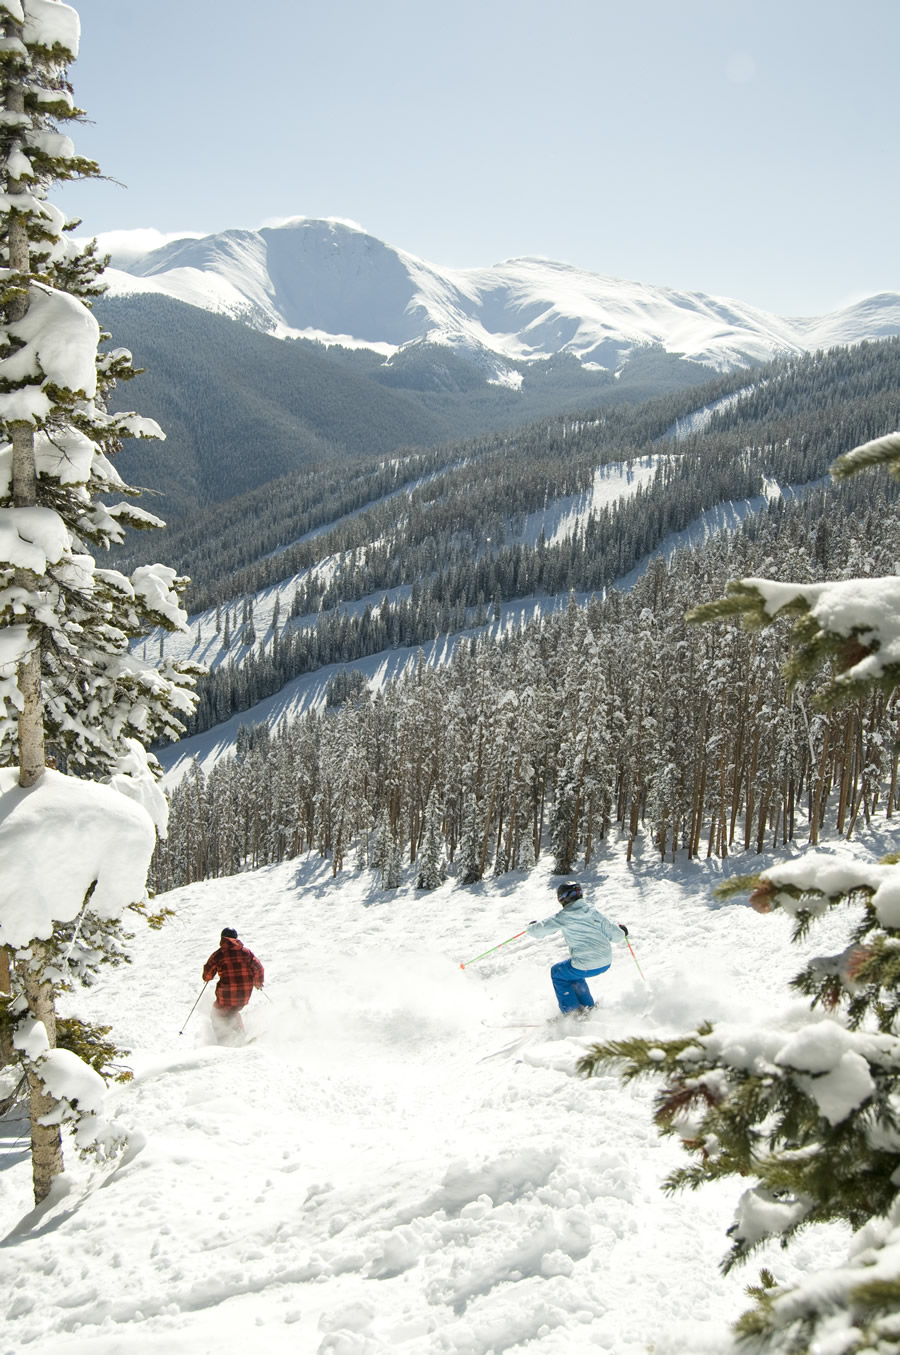 Located 67 miles from downtown Denver, Colorado, Winter Park Resort offers more than 3,000 acres of skiable terrain.